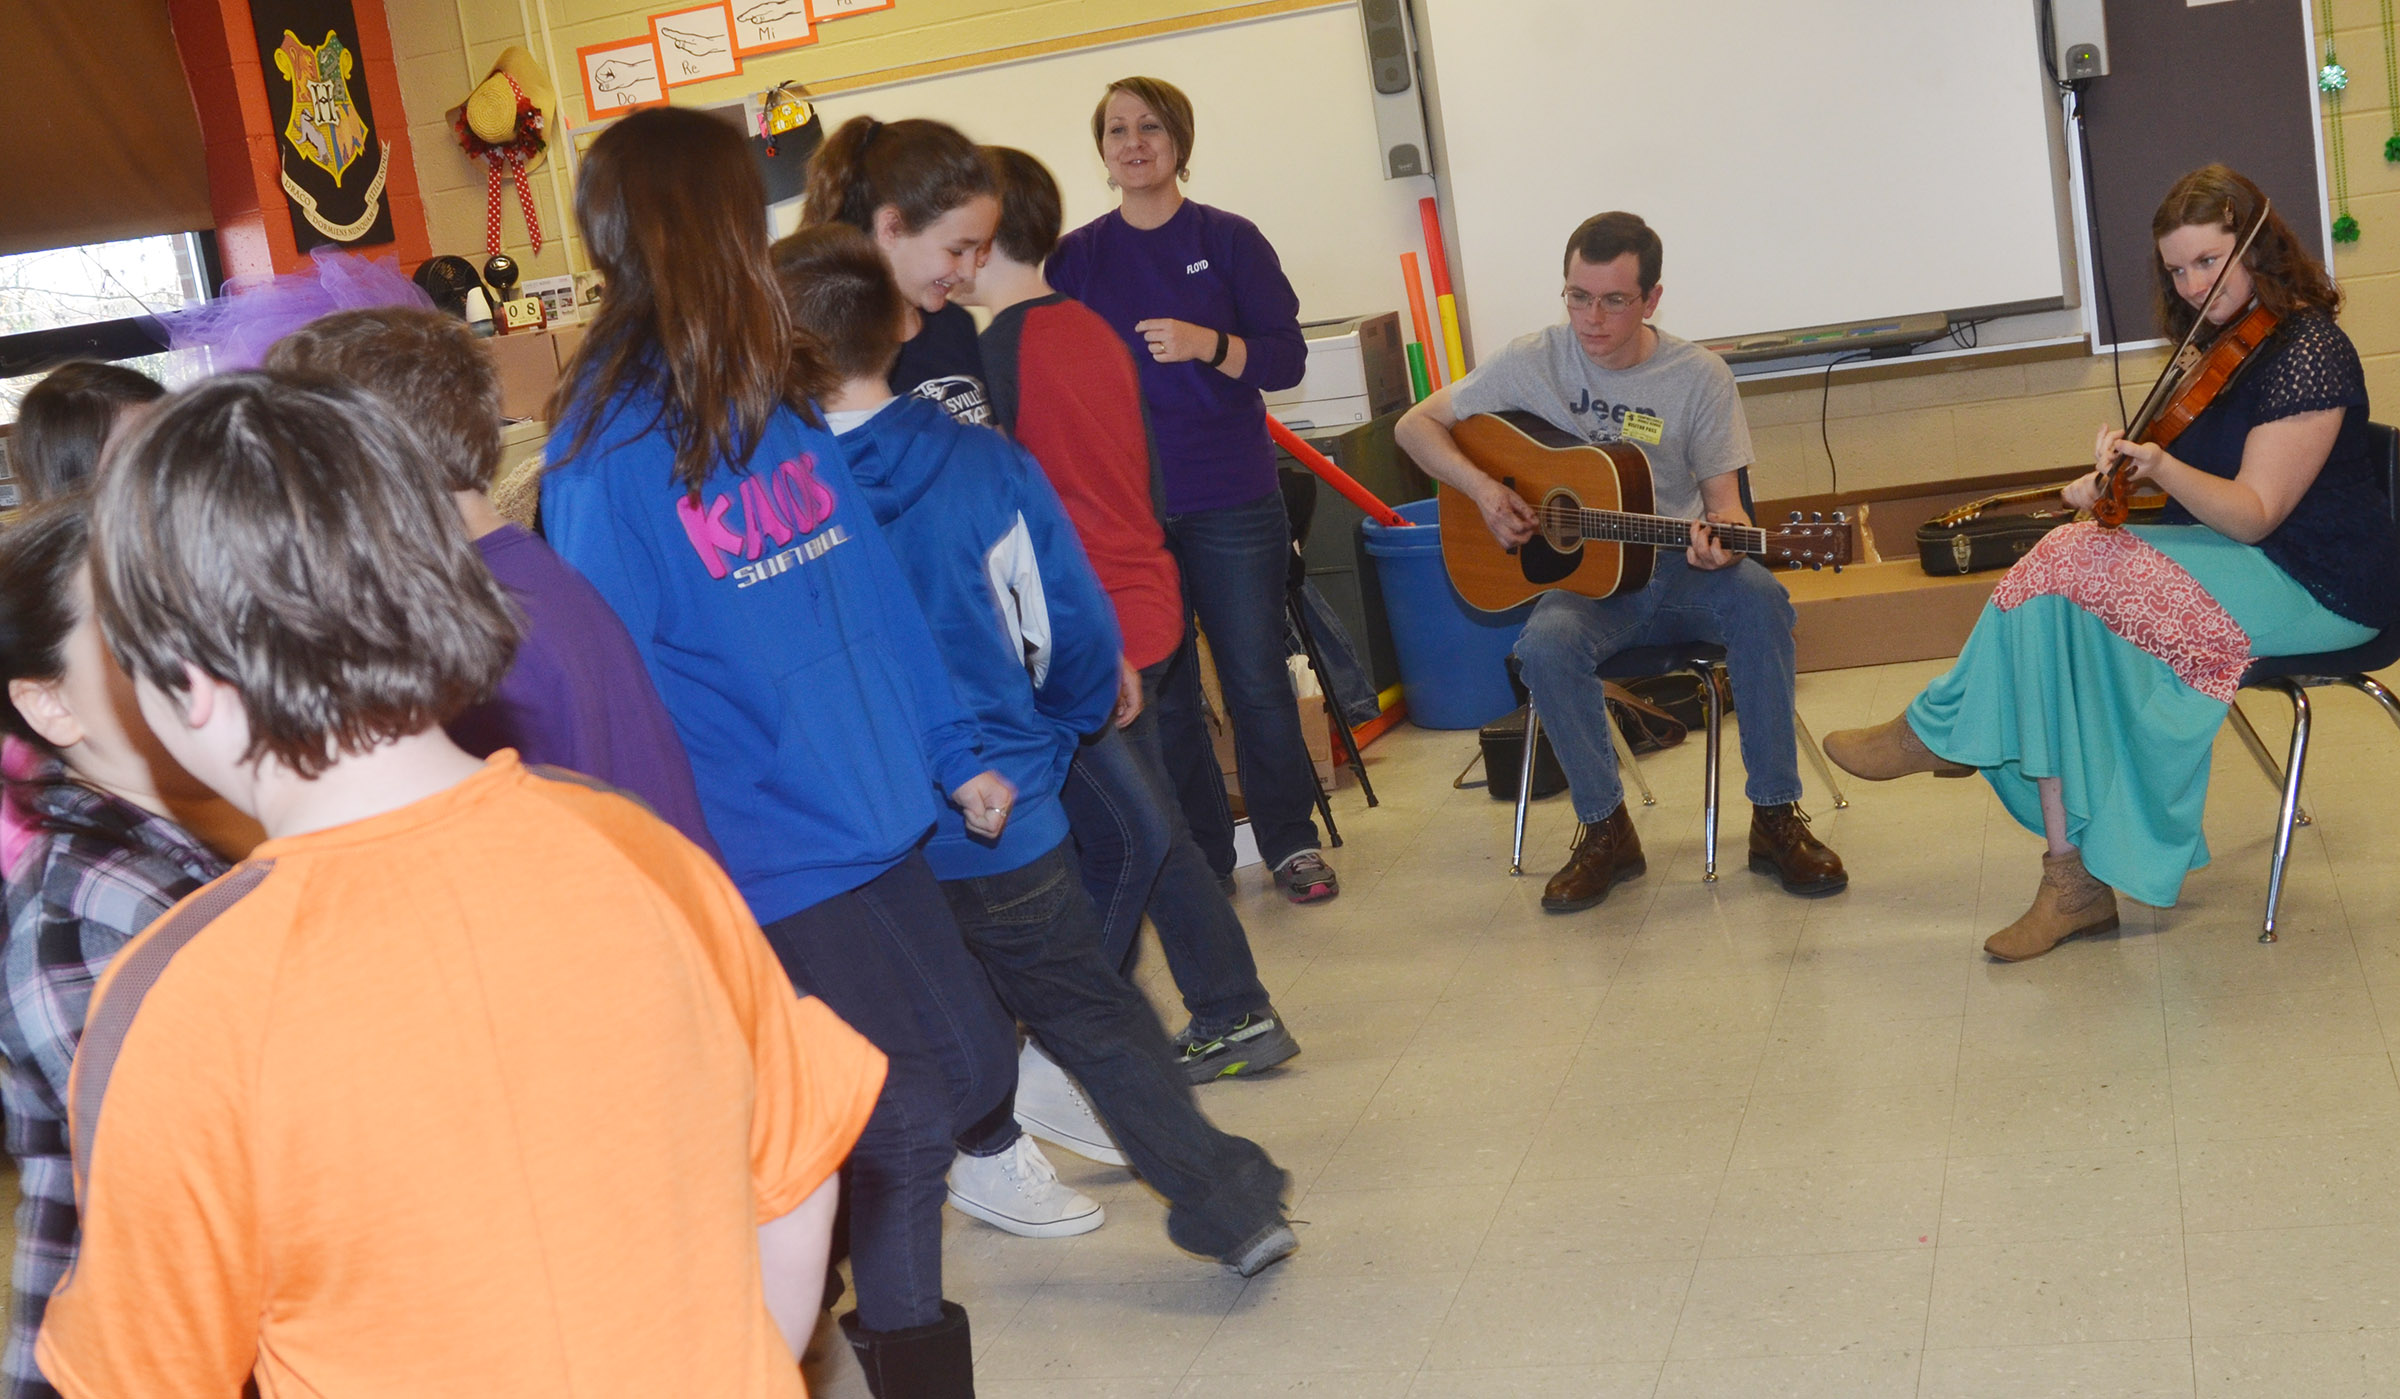 Local musicians Alex Vaughn, at left, and Jenny Beams play folk music as CMS students, led by music teacher Jessica Floyd, try out square dancing.